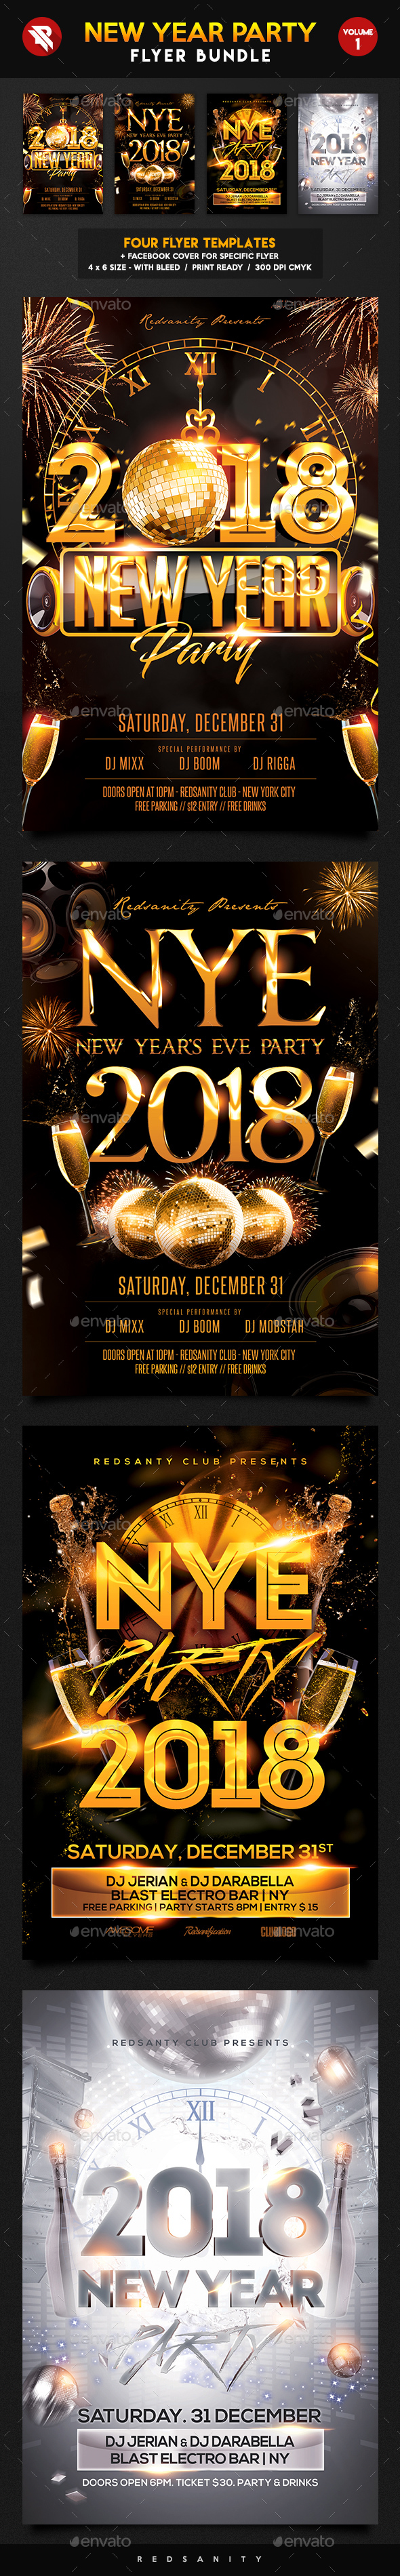 GraphicRiver New Year Party Flyer Bundle Vol.1 21120972